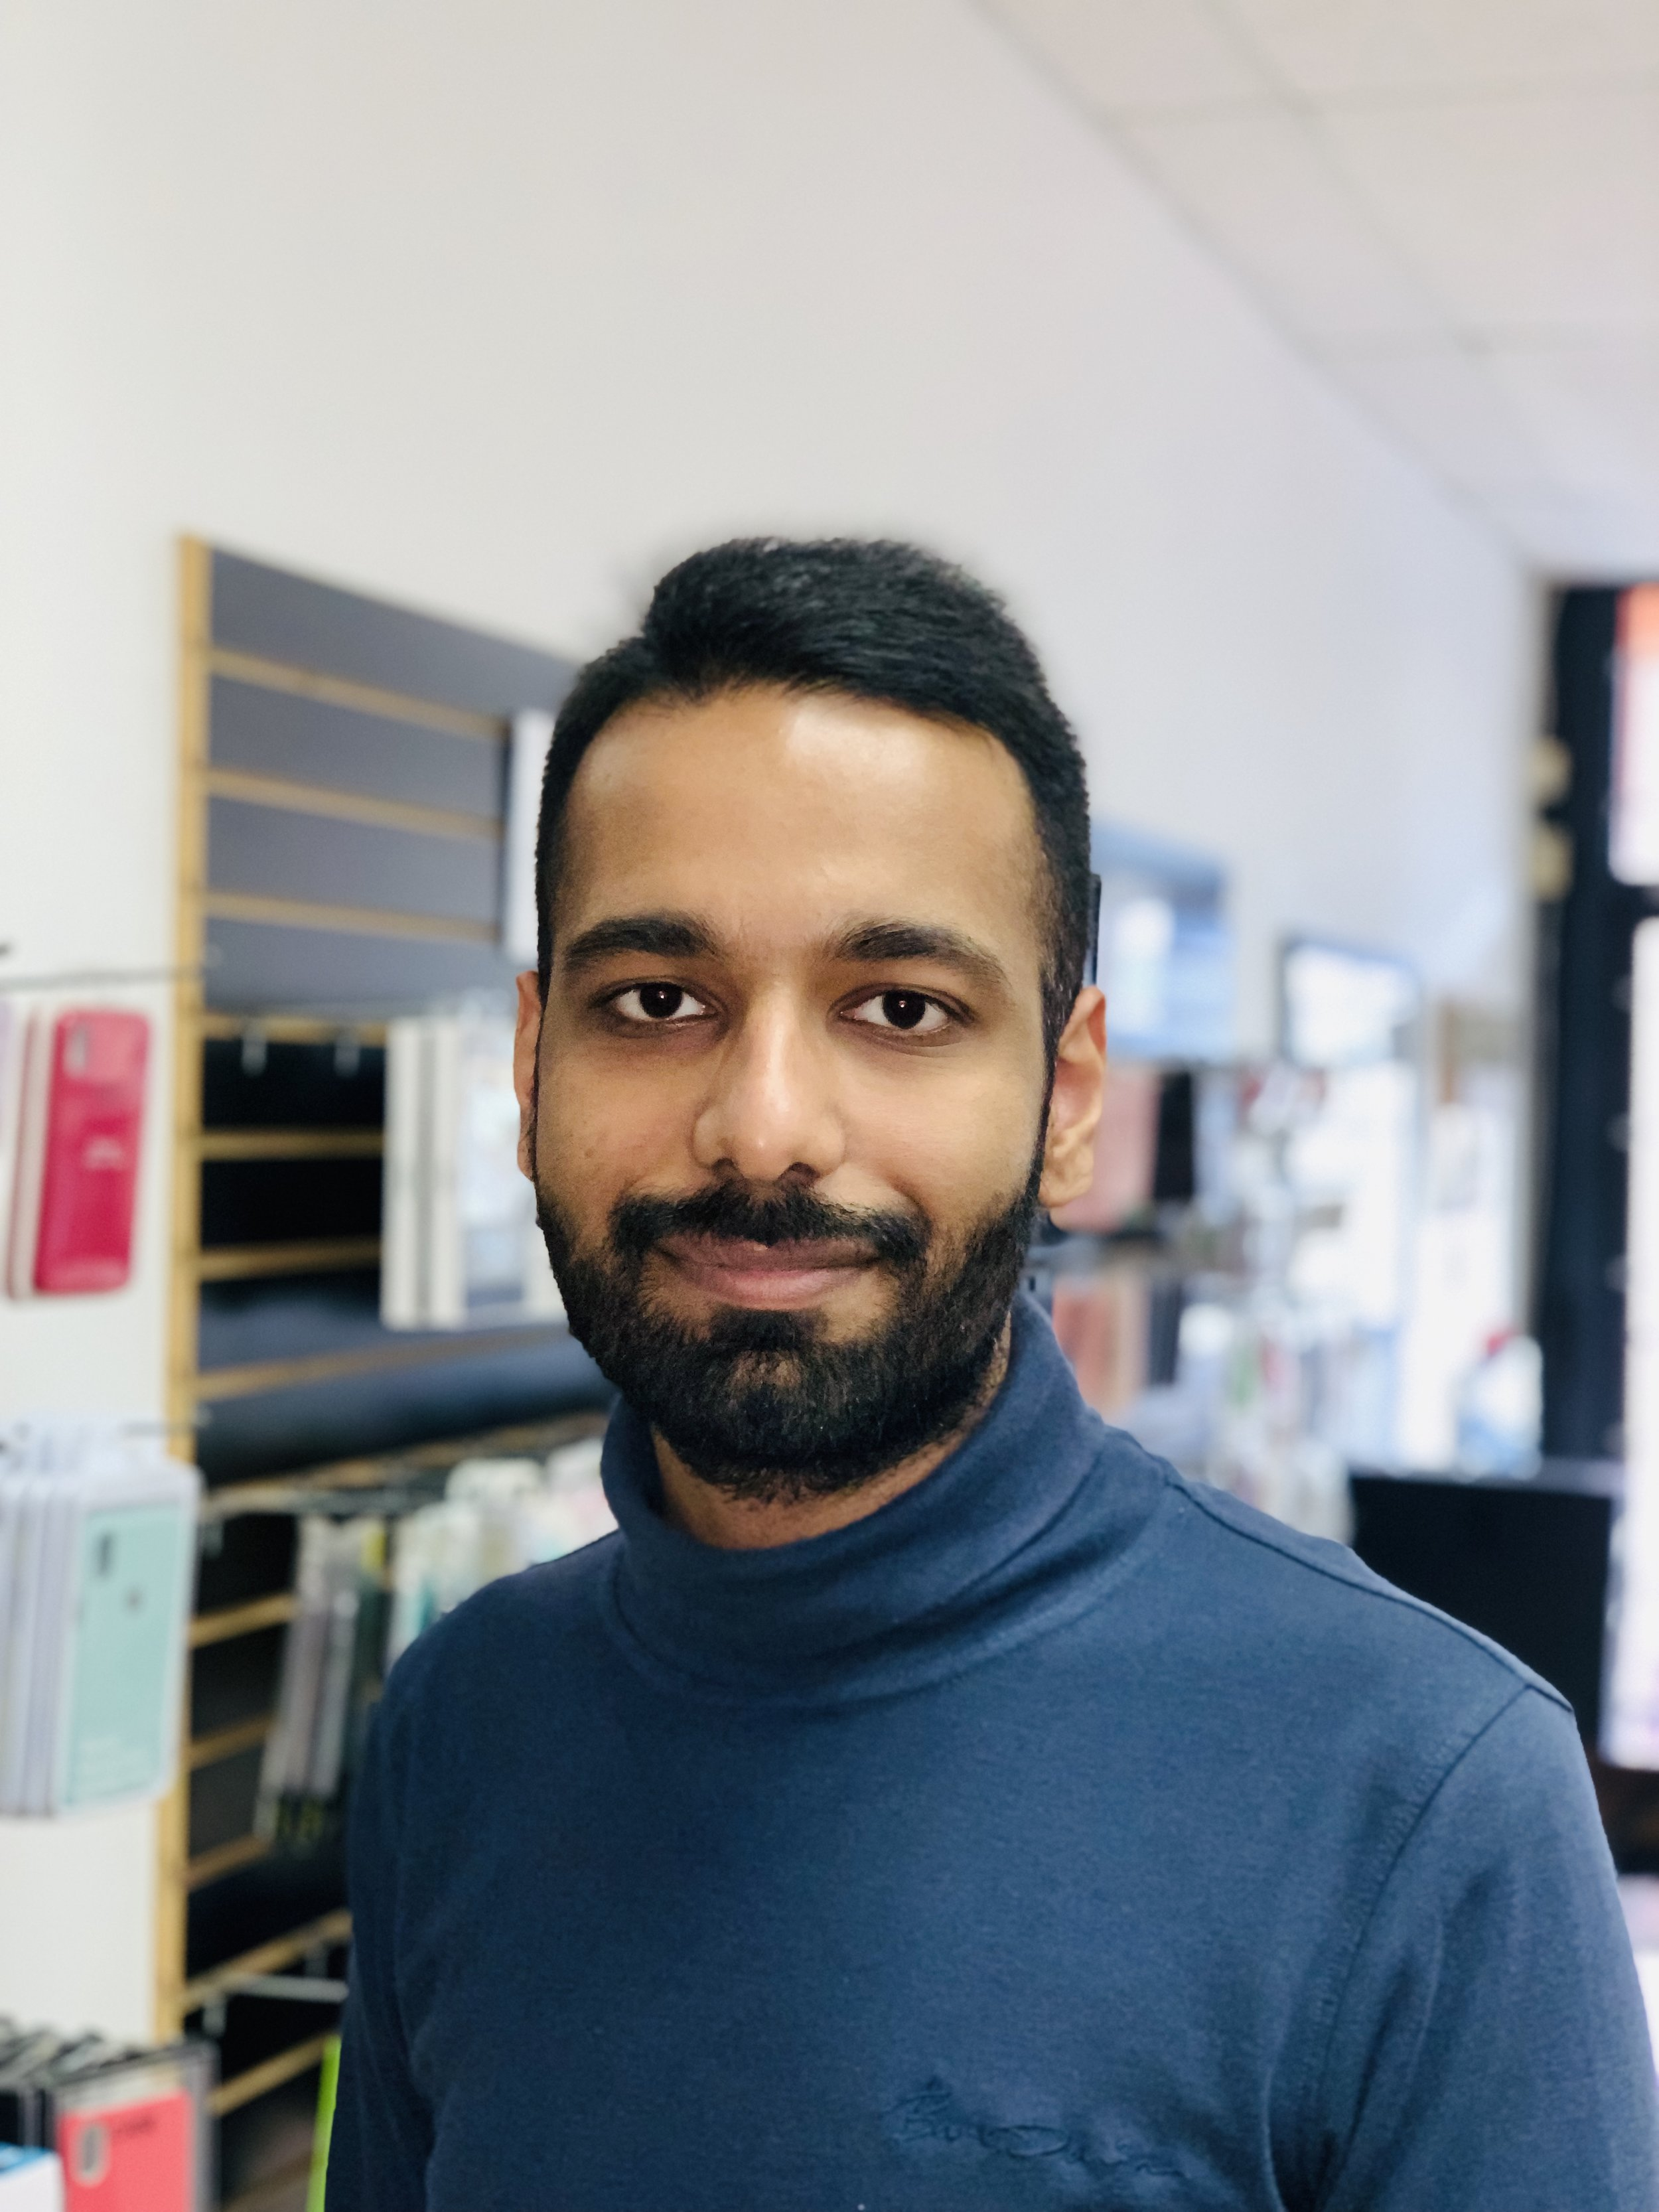 Neil Thapar - Neil is a new addition to the All About Tech team. His welcoming smile and upbeat attitude are what customers gravitate to. Neil has both his iOS and Mac certification and has years of experience fixing both software and hardware problems on Macs and iOS devices.